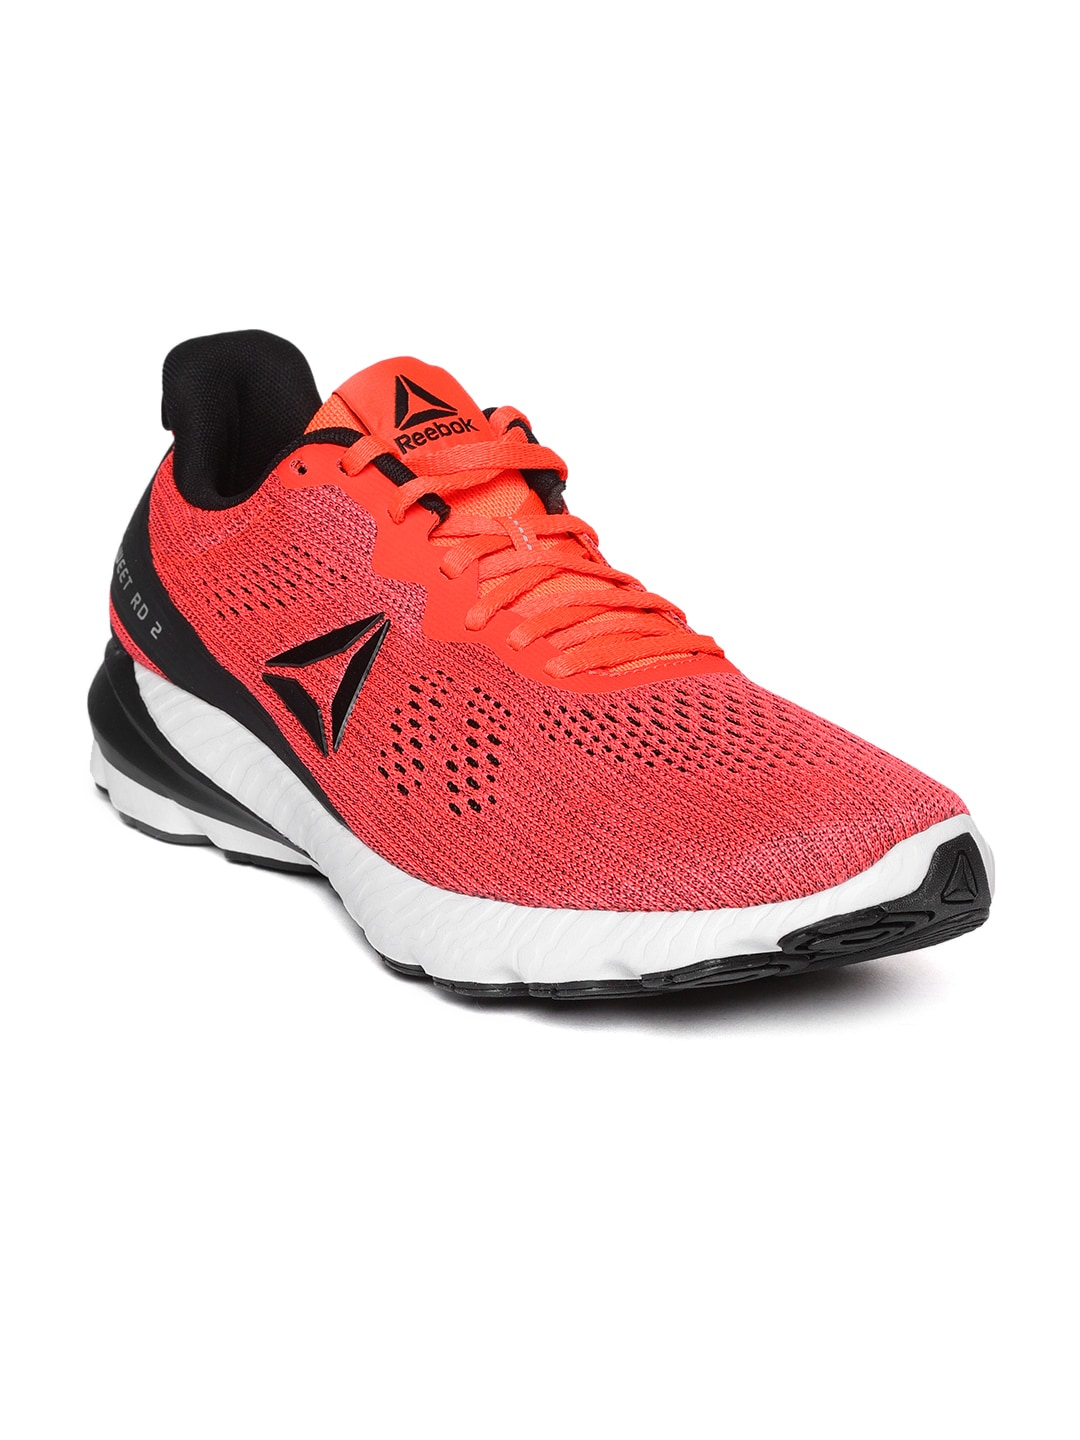 71ed6a26f4f7 Reebok Shoes - Buy Reebok Shoes For Men   Women Online